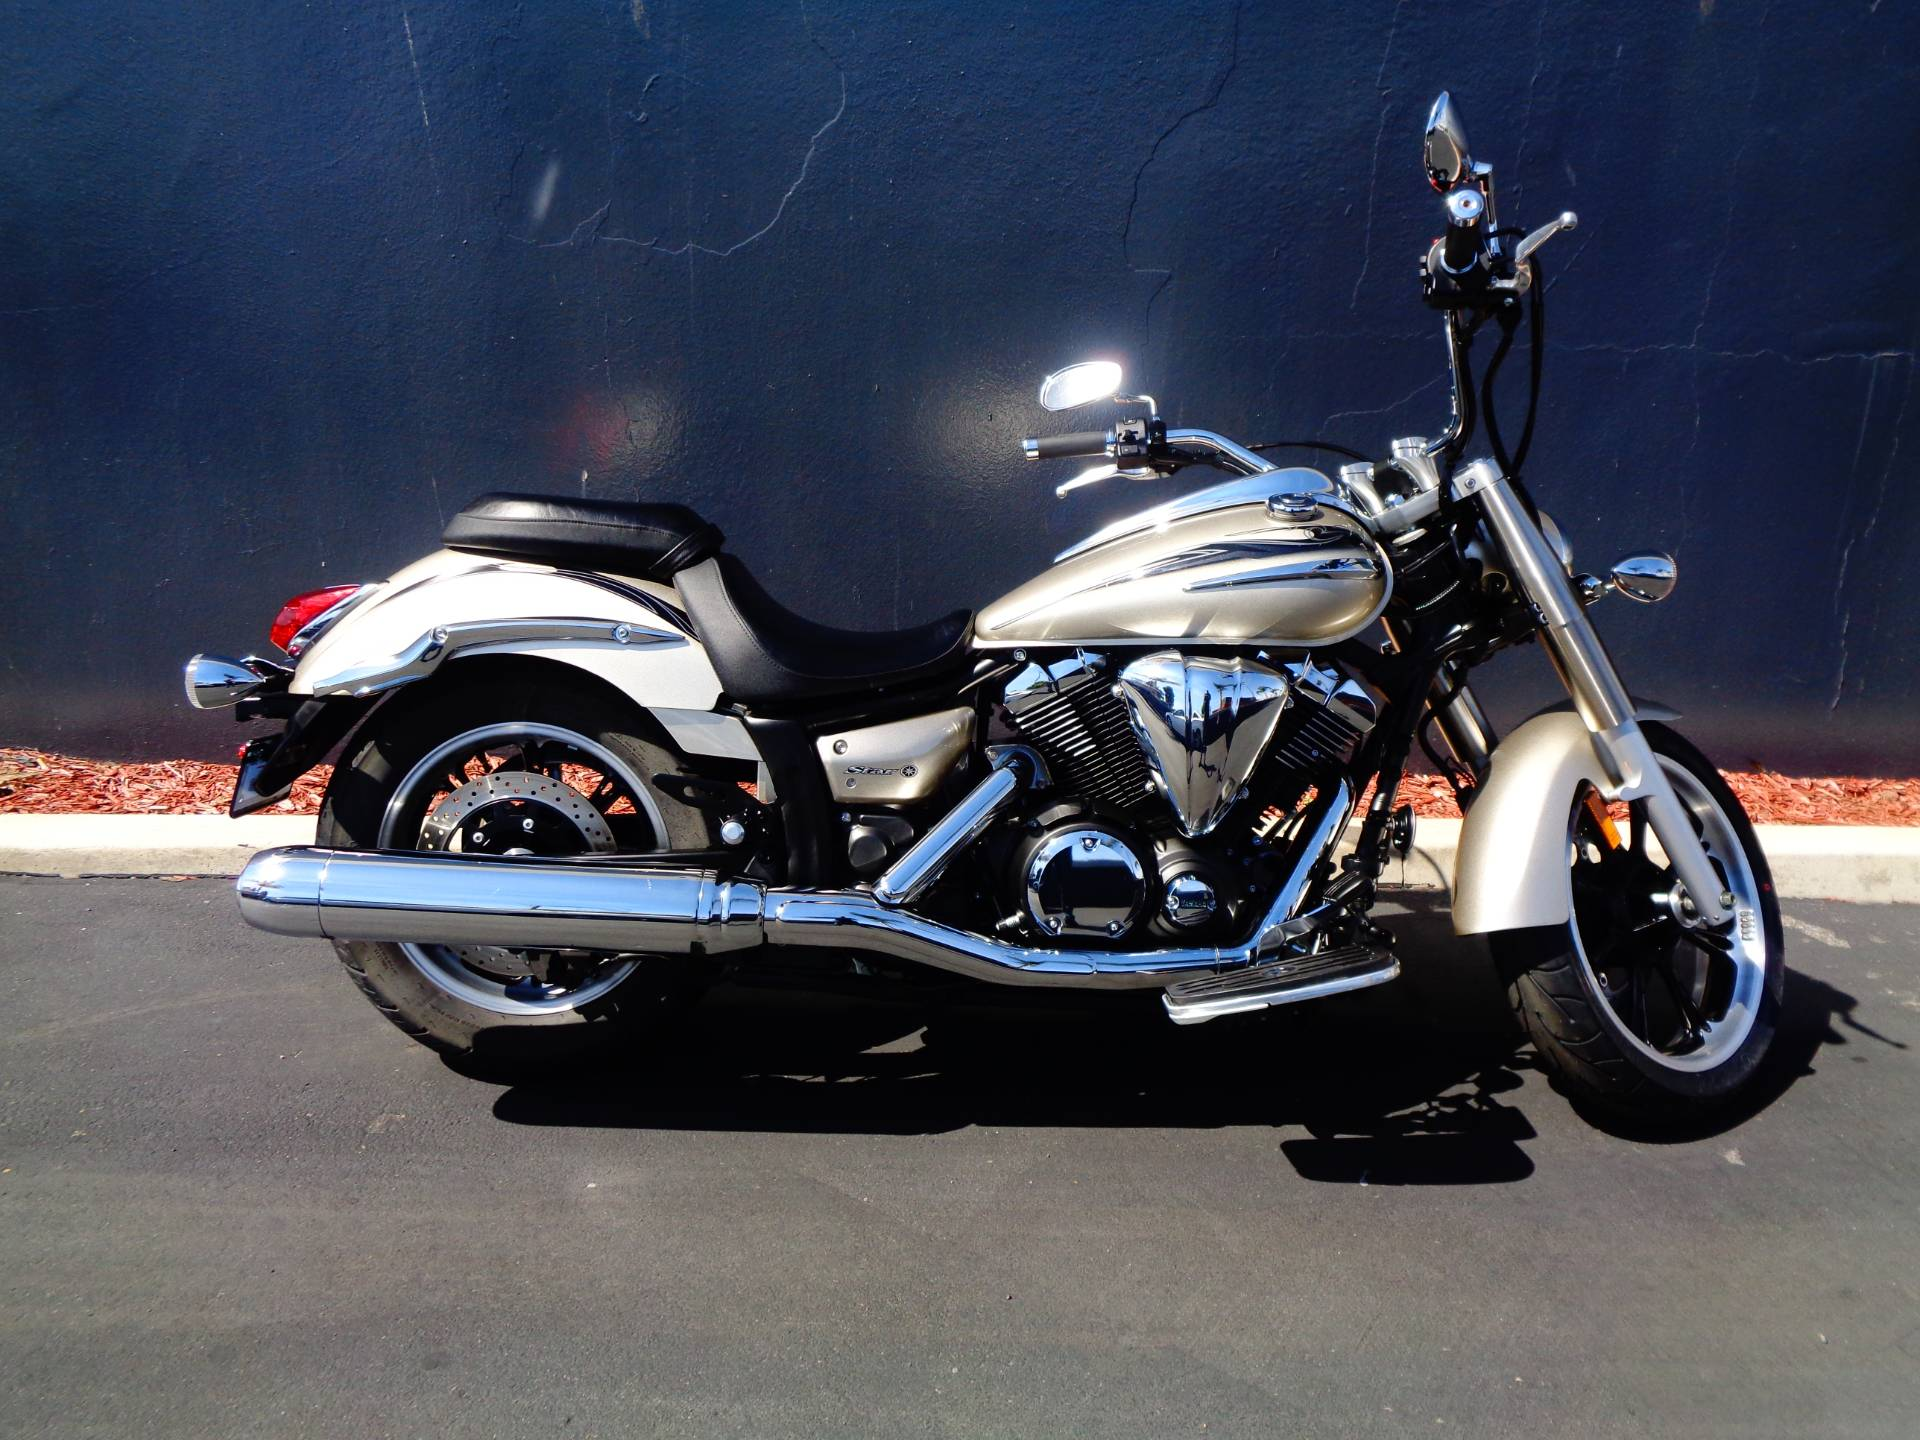 2010 Yamaha V Star 950 Tourer in Chula Vista, California - Photo 1